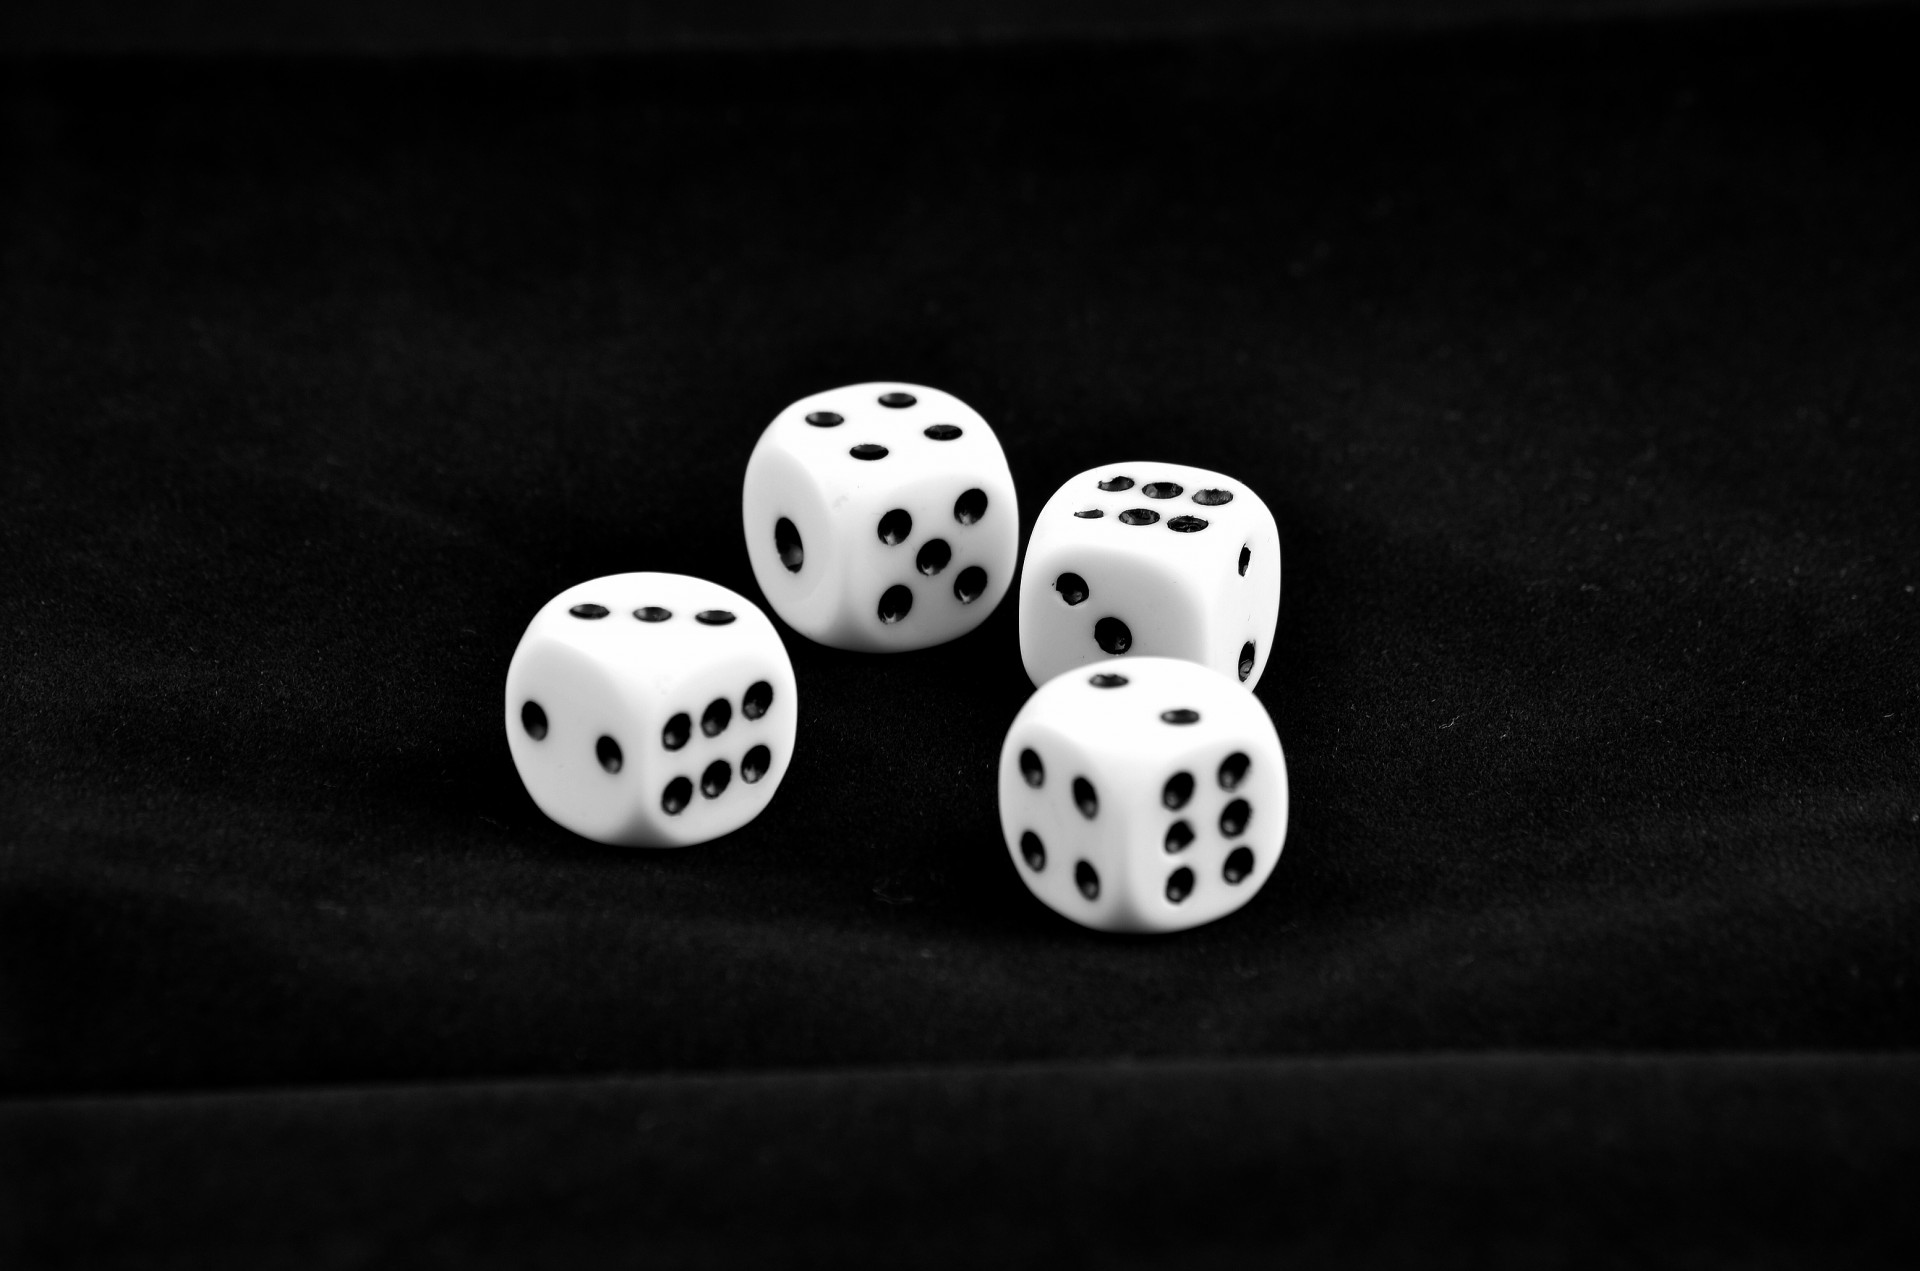 Night View Hd Wallpaper White Dice Free Stock Photo Public Domain Pictures